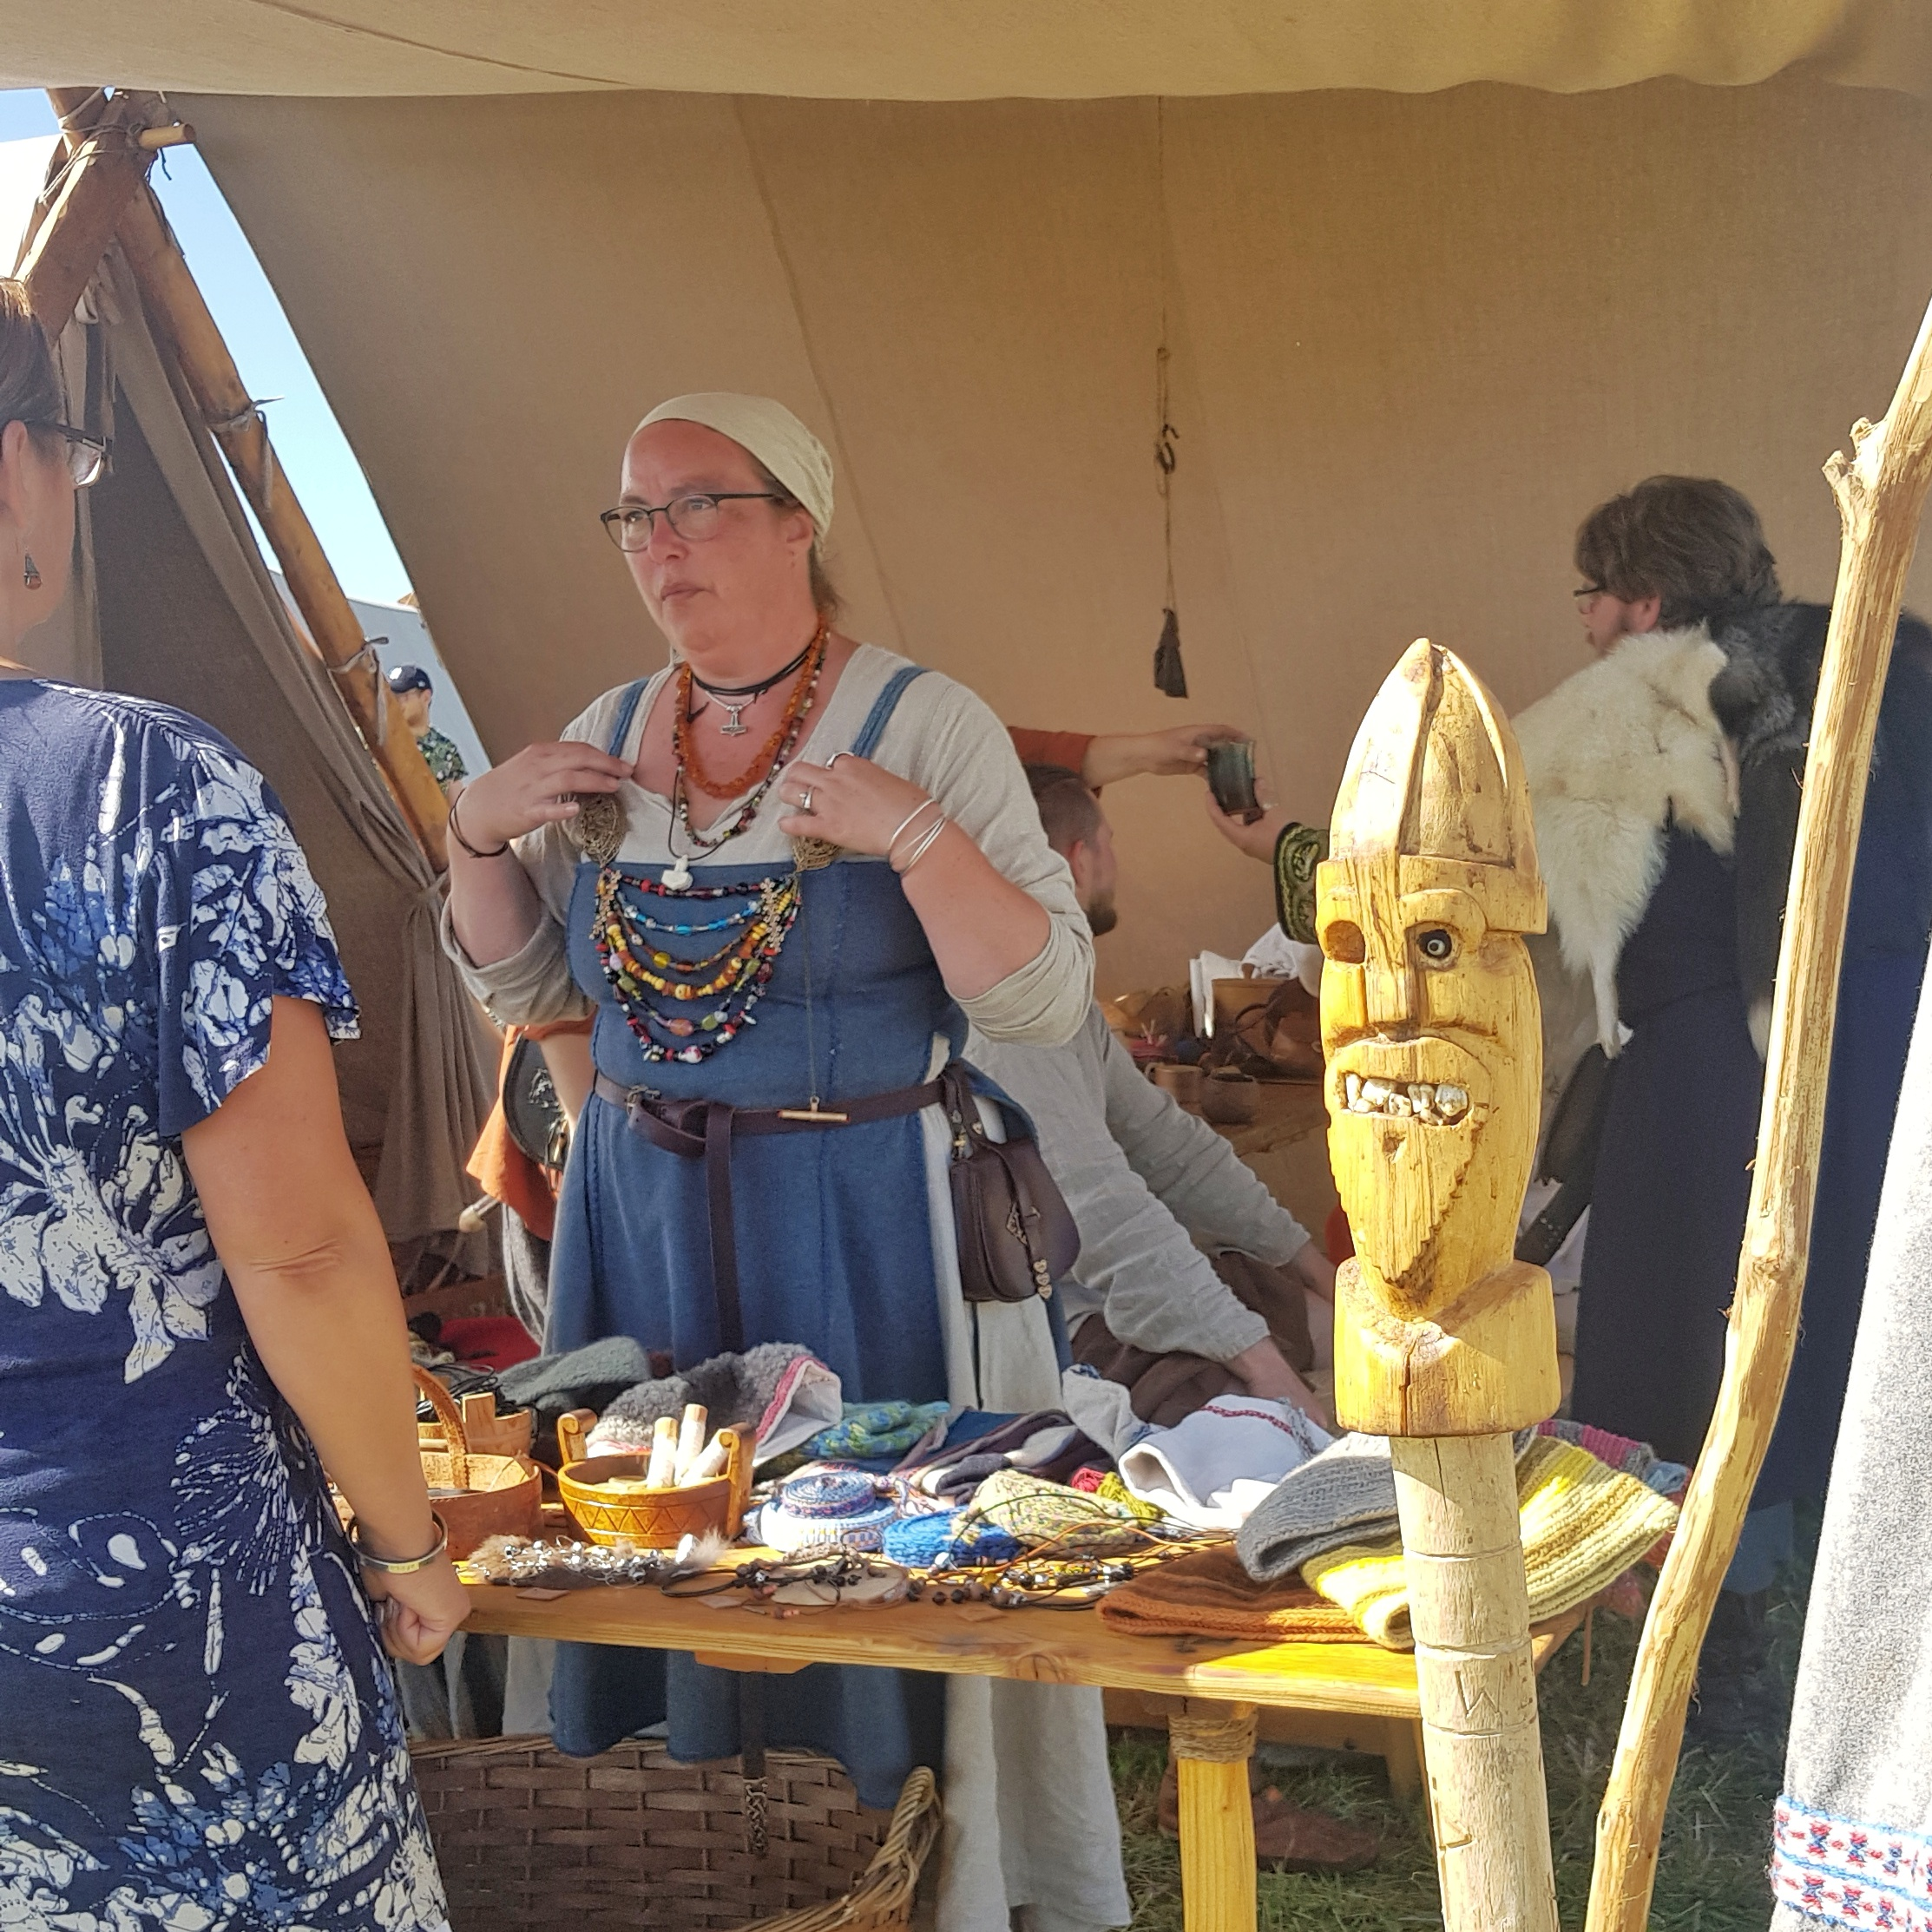 Day 236 - August 24: Iron Age Market Day